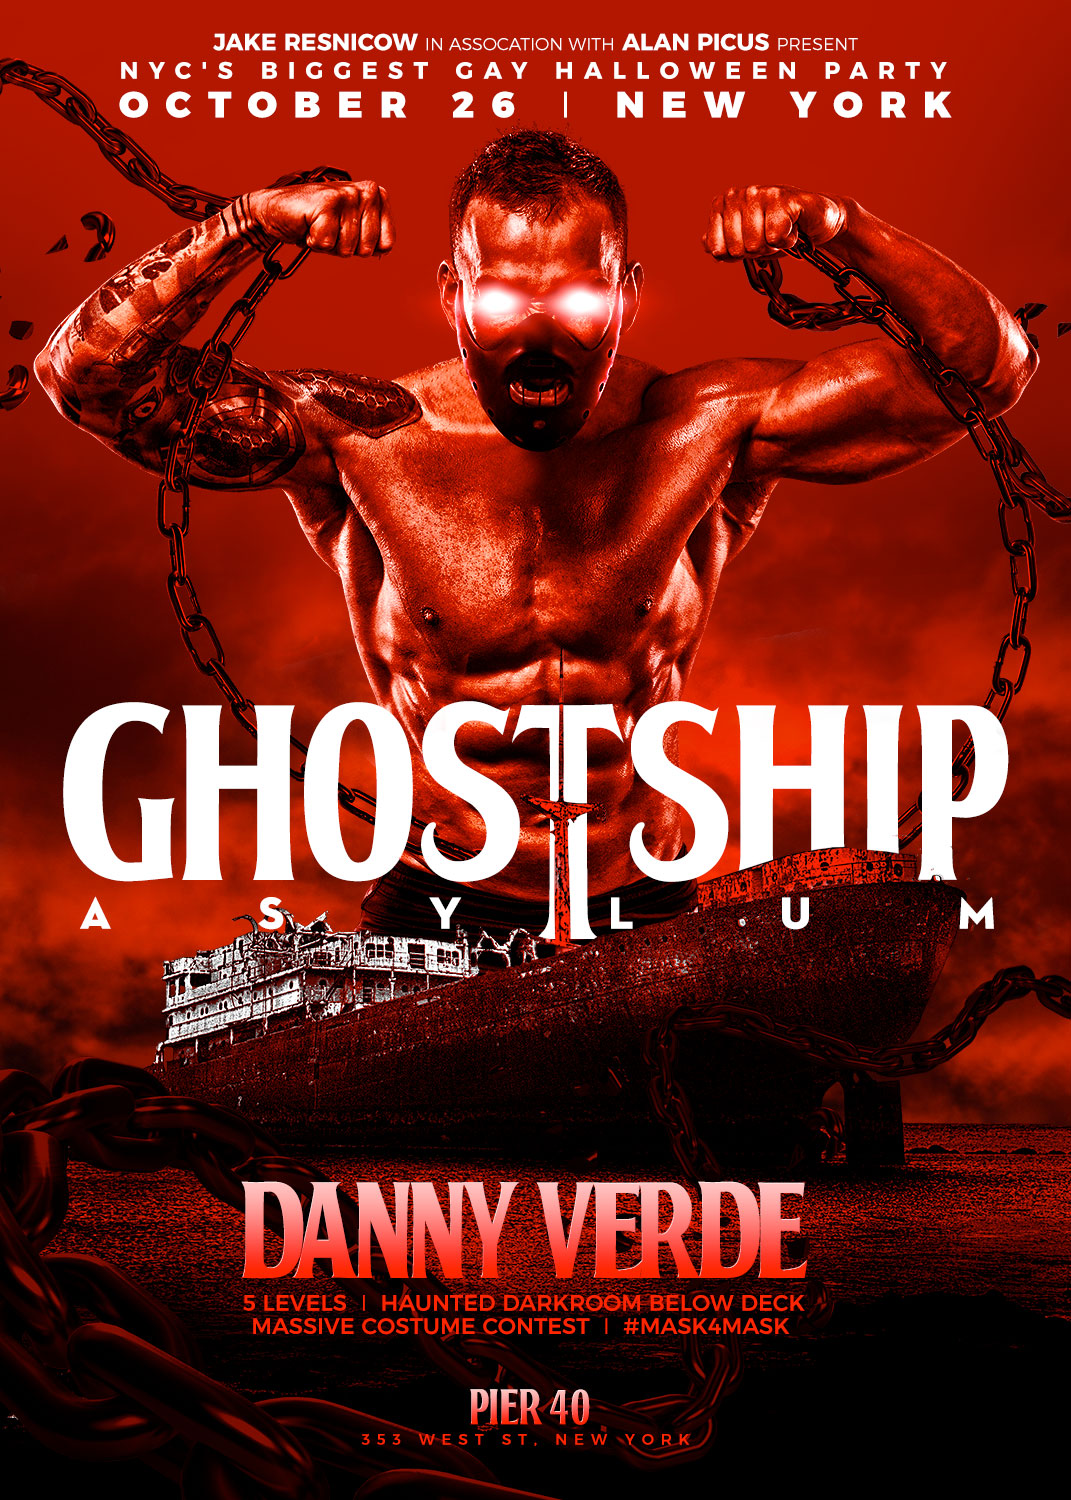 tickets for ghostship | halloween nyc main event | dj danny verde in